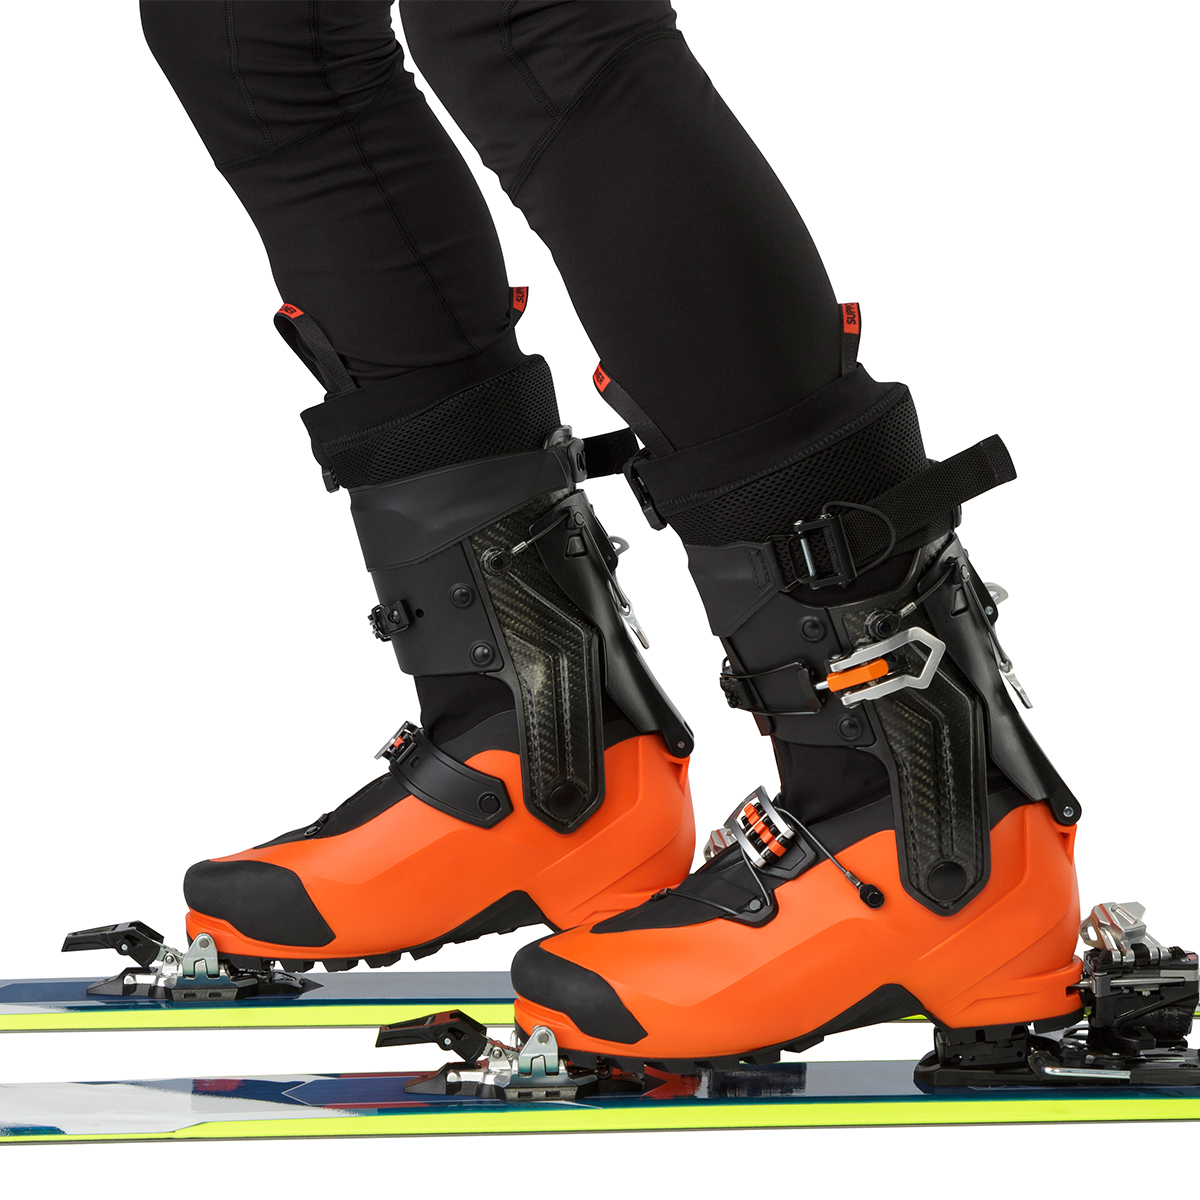 3eade2c06e ... Mountaineering Boot Arc teryx Procline Carbon Support Ski Touring and  Mountaineering ...